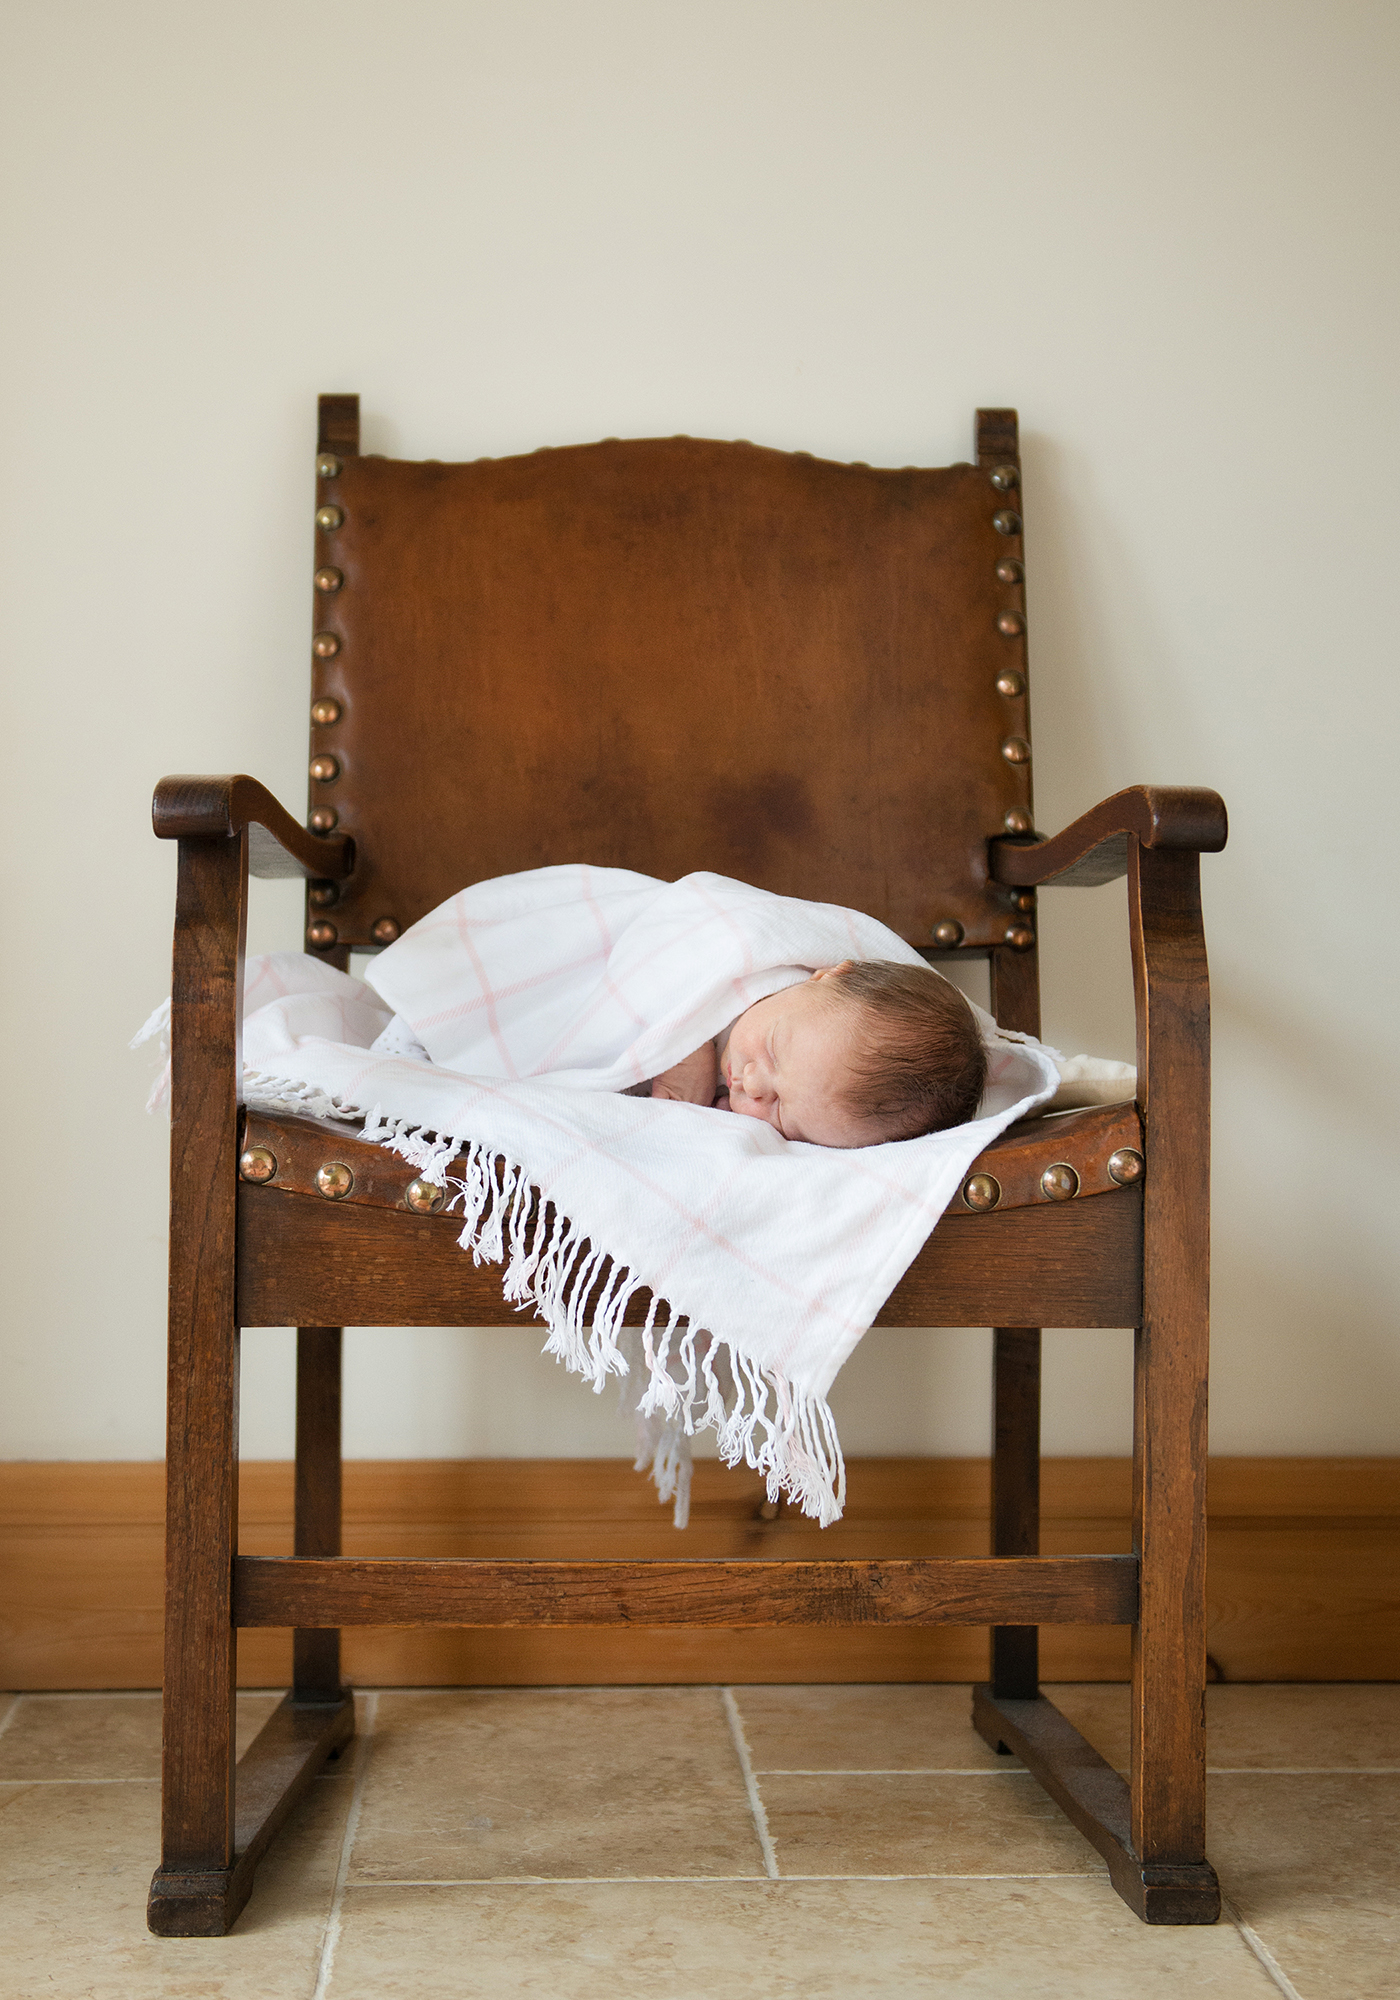 Baby photography in your own home